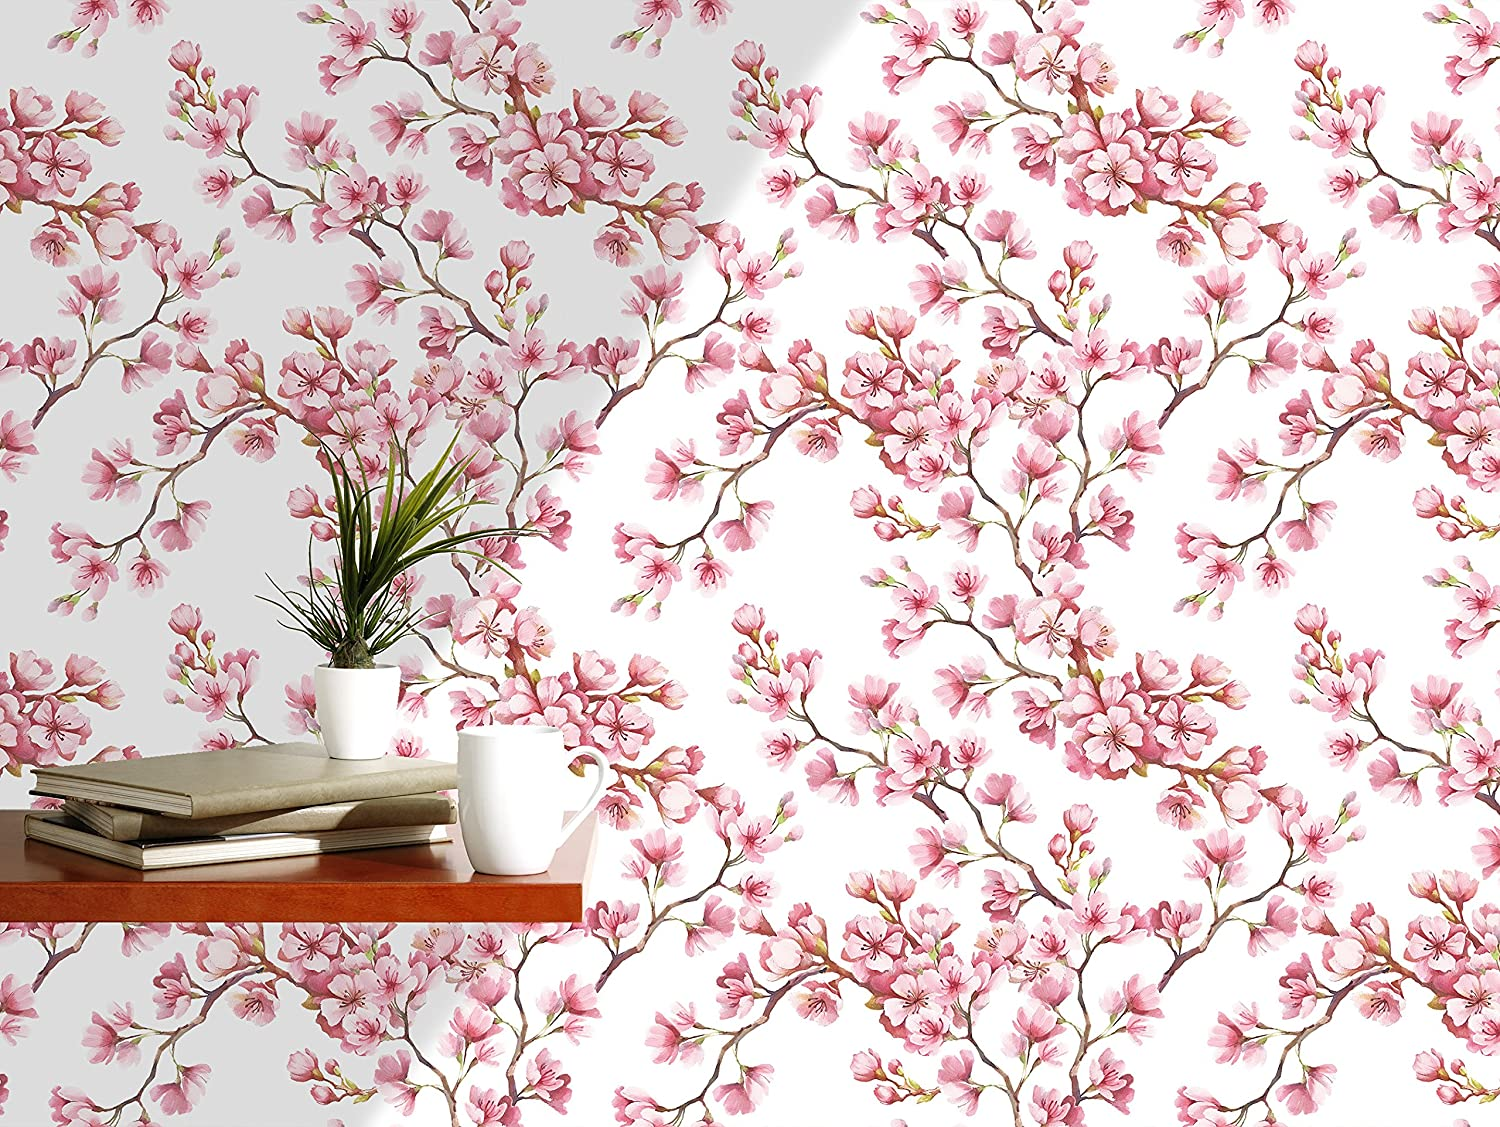 Amazon Com Watercolor Cherry Blossoms Self Adhesive Removable